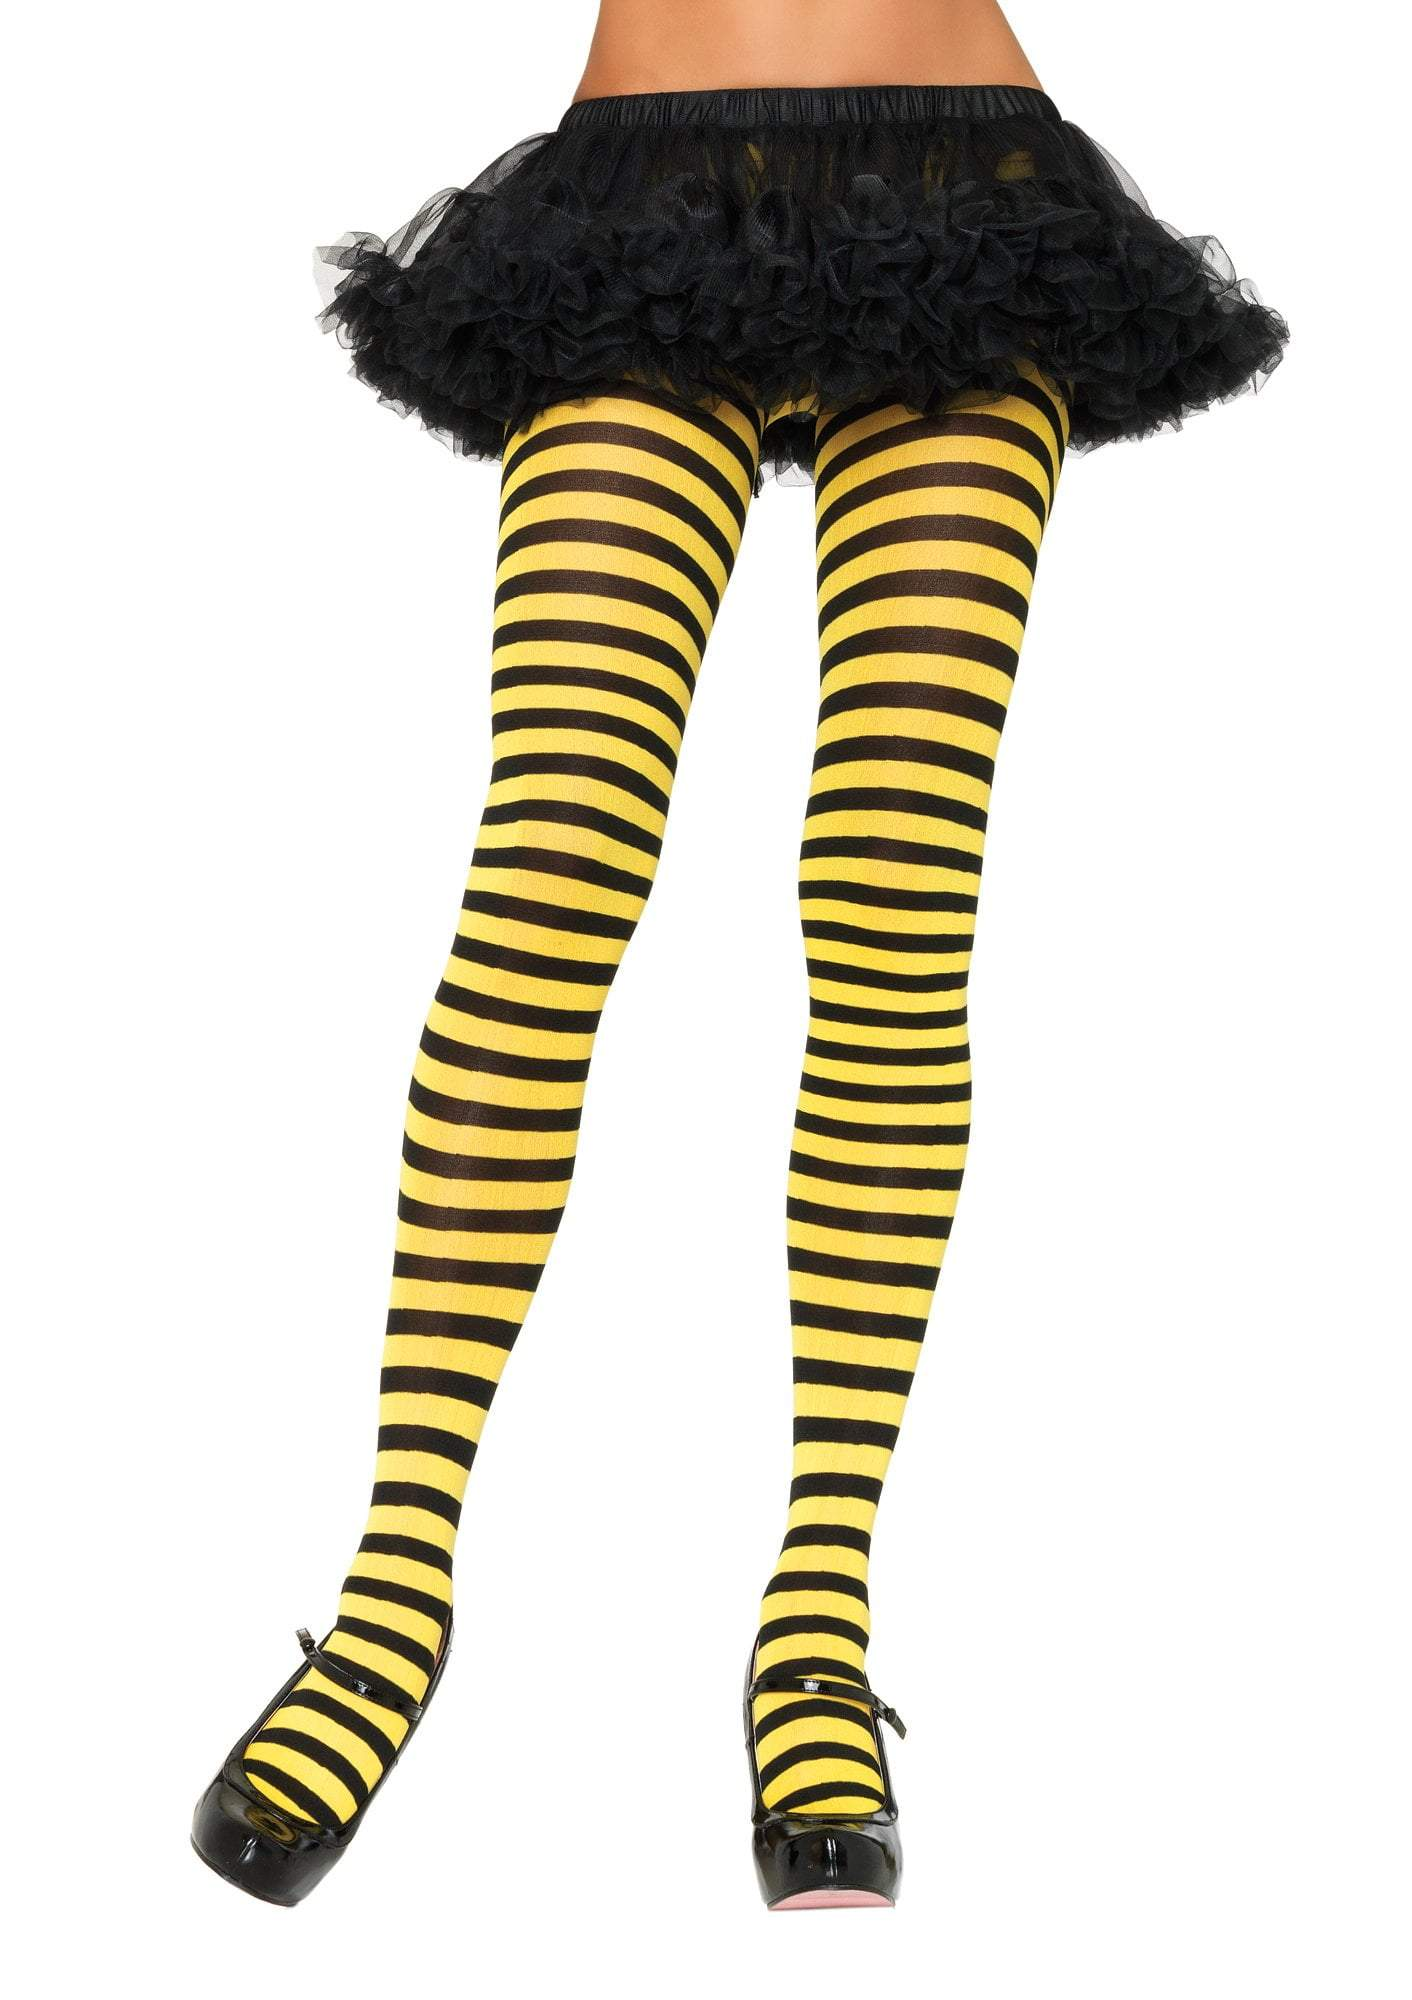 Leg Avenue Costume Accessories BLACK/YELLOW / O/S Adult Nylon Stripe Tights